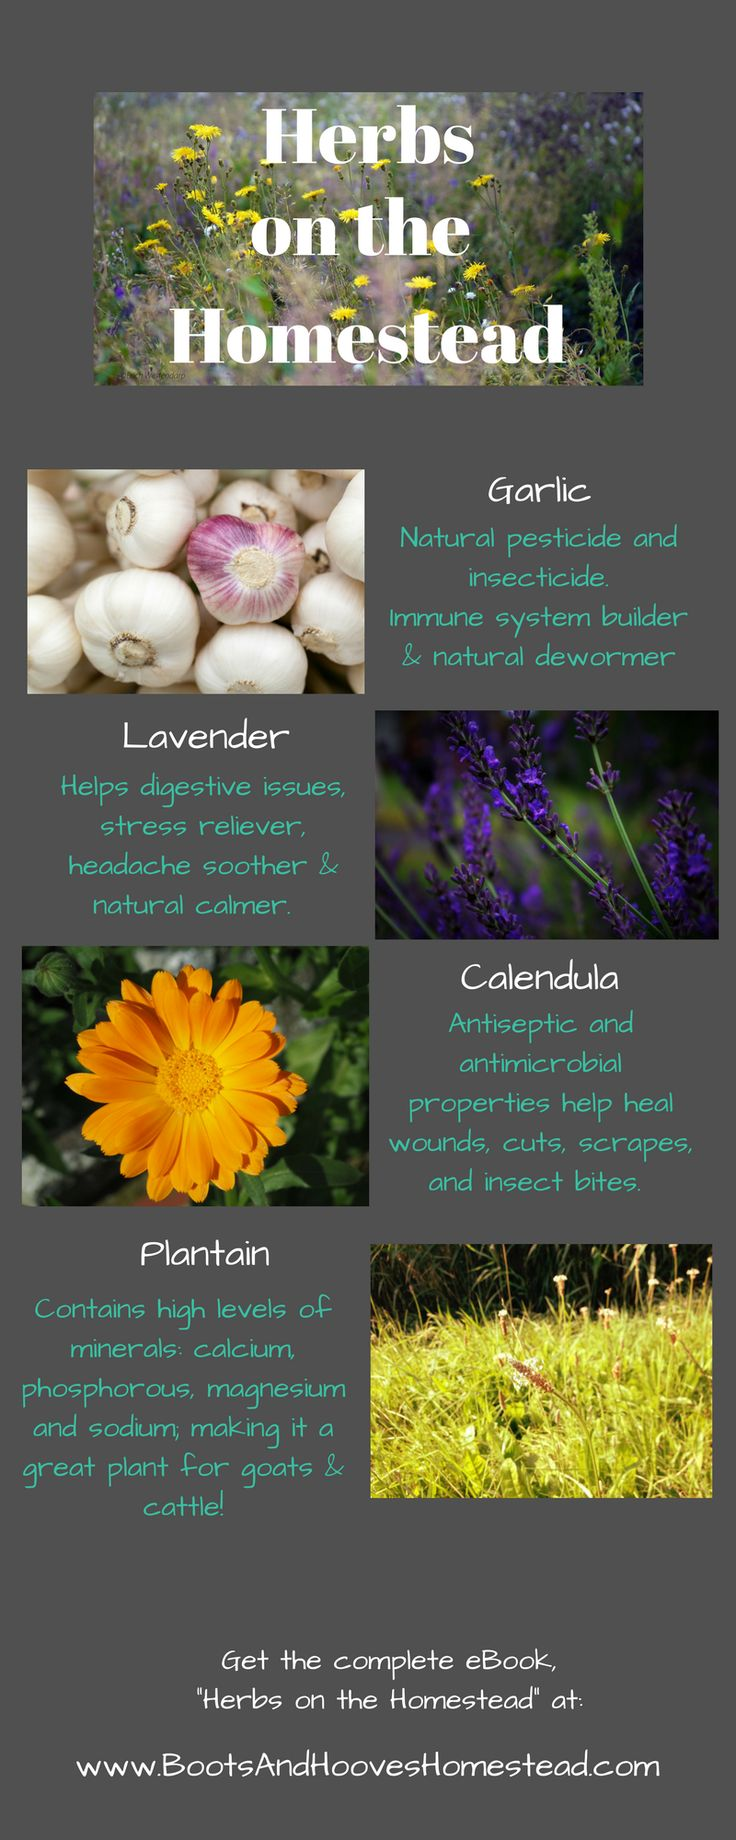 In this herbal guidebook, I am sharing the benefits of the most common herbs, how you can incorporate them in your homestead.